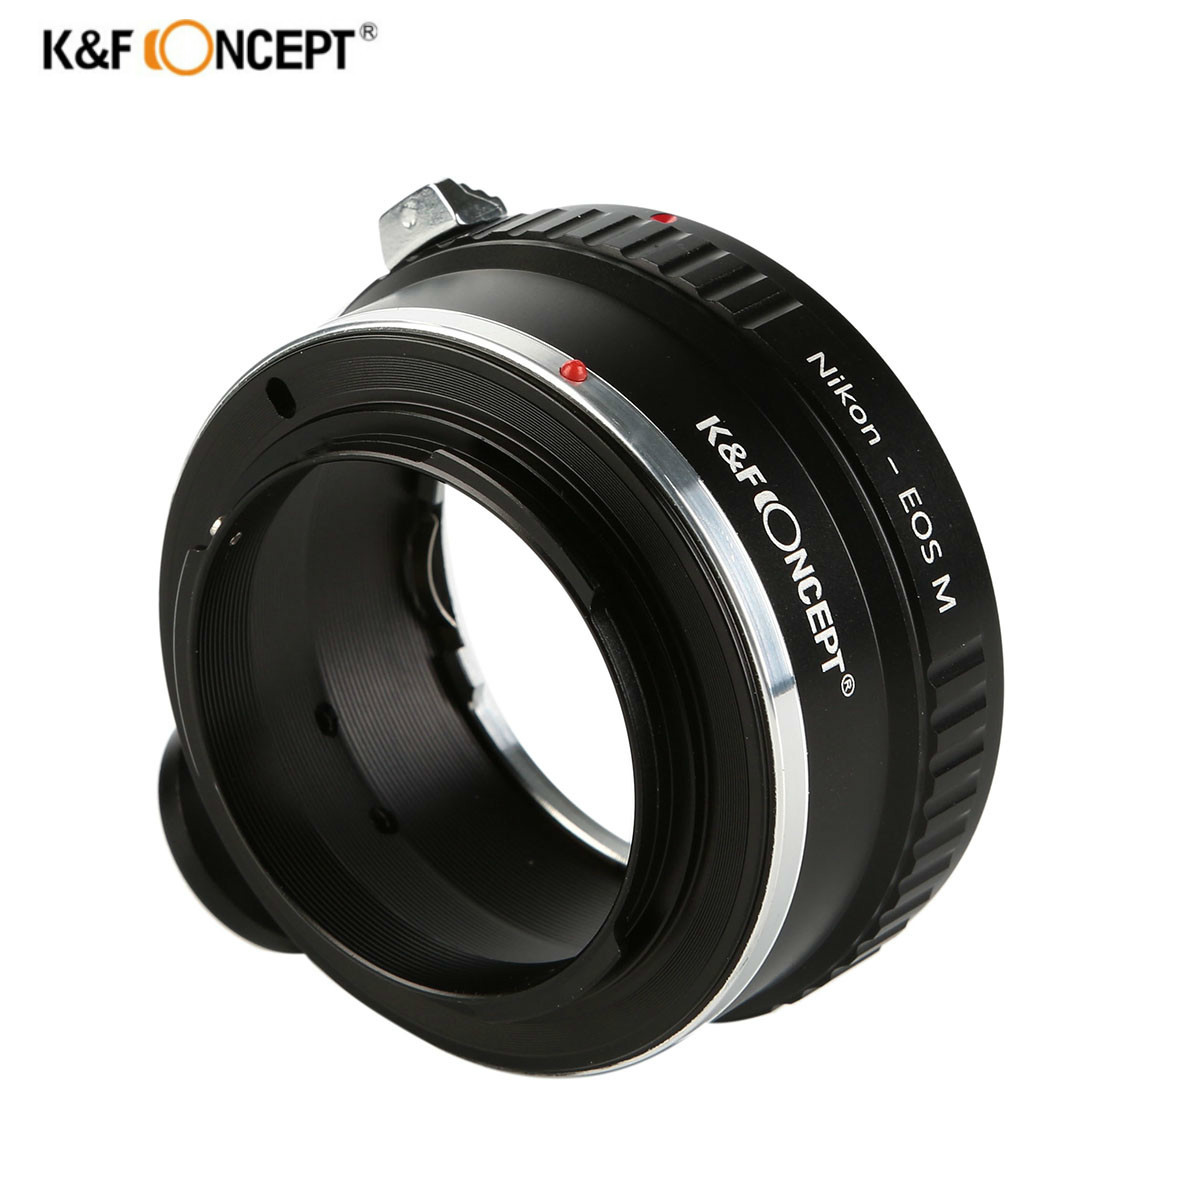 K&F Concept Lens Adapter Ring with Tripod for Nikon AI AI S F Lens to Canon EOS M Mirrorless